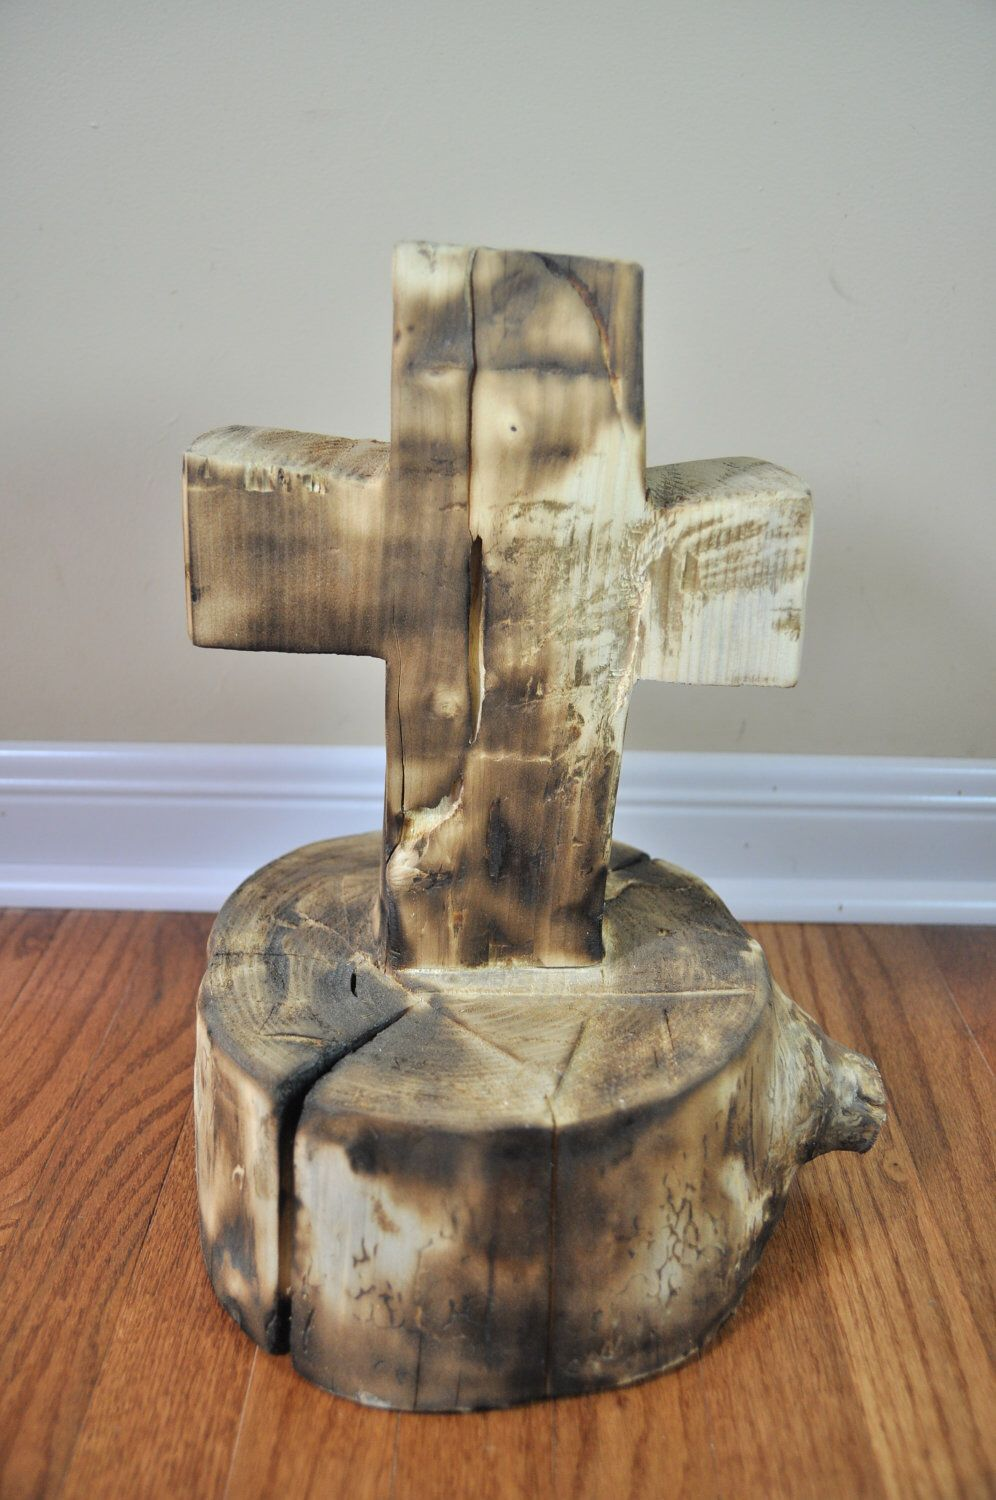 Carved Wooden Cross by REPURPOSEGALLERY on Etsy https://www.etsy.com/listing/110971919/carved-wooden-cross